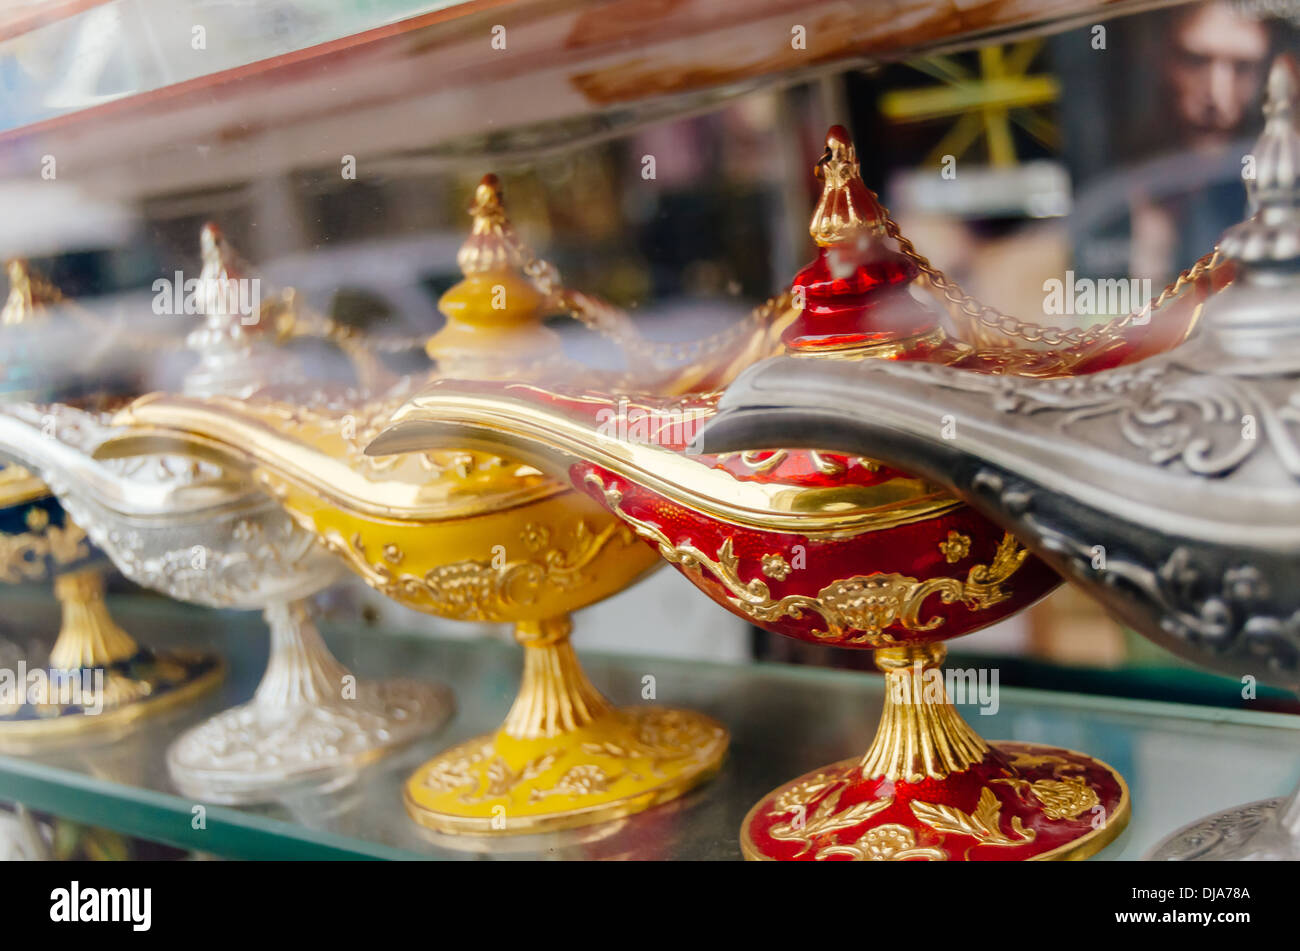 Colorful souvenir Aladdin sale in for shop lamps and at dCoxBeWQr